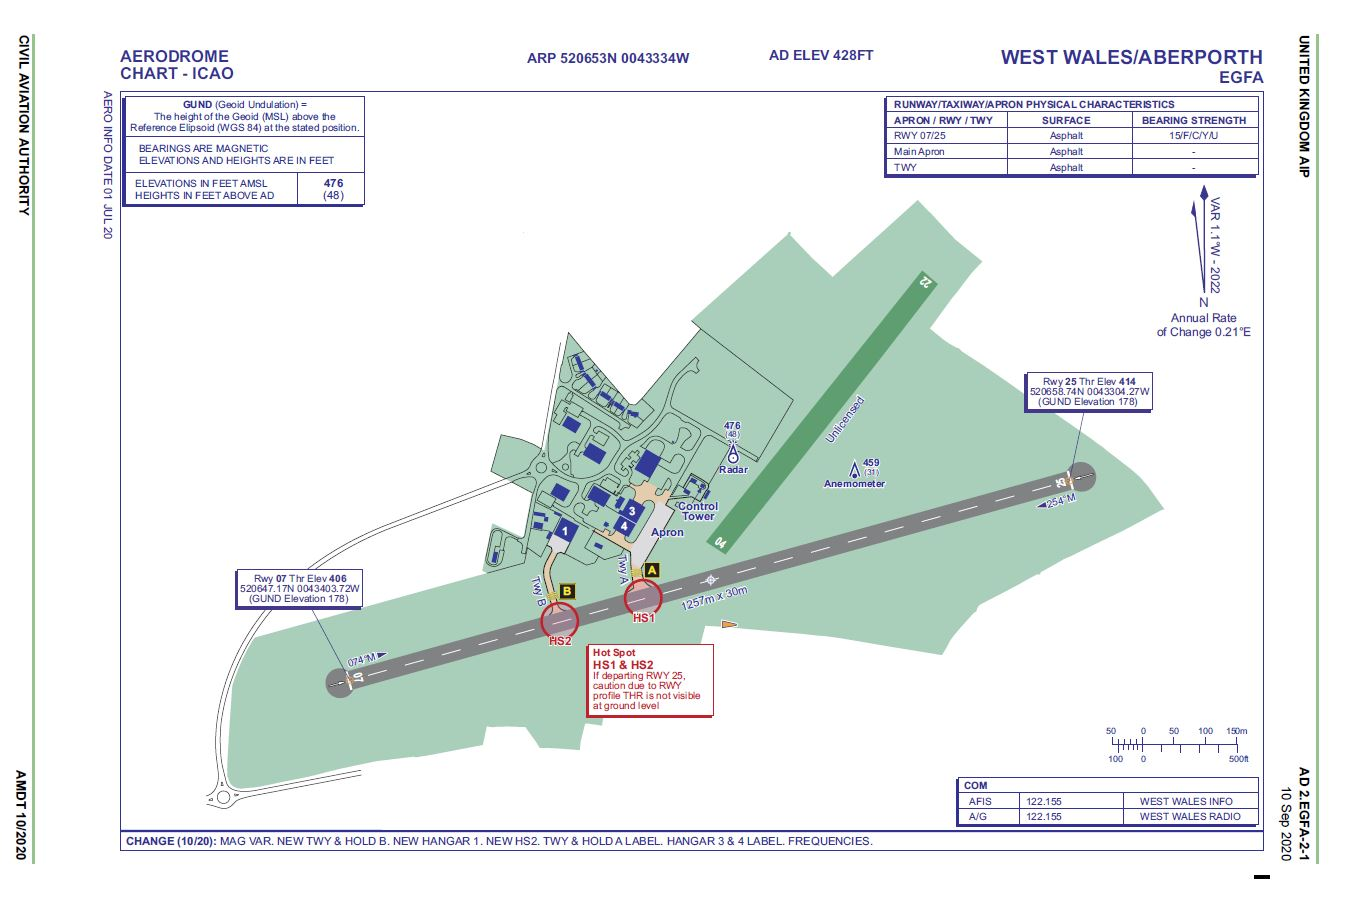 West Wales Airfield Chart